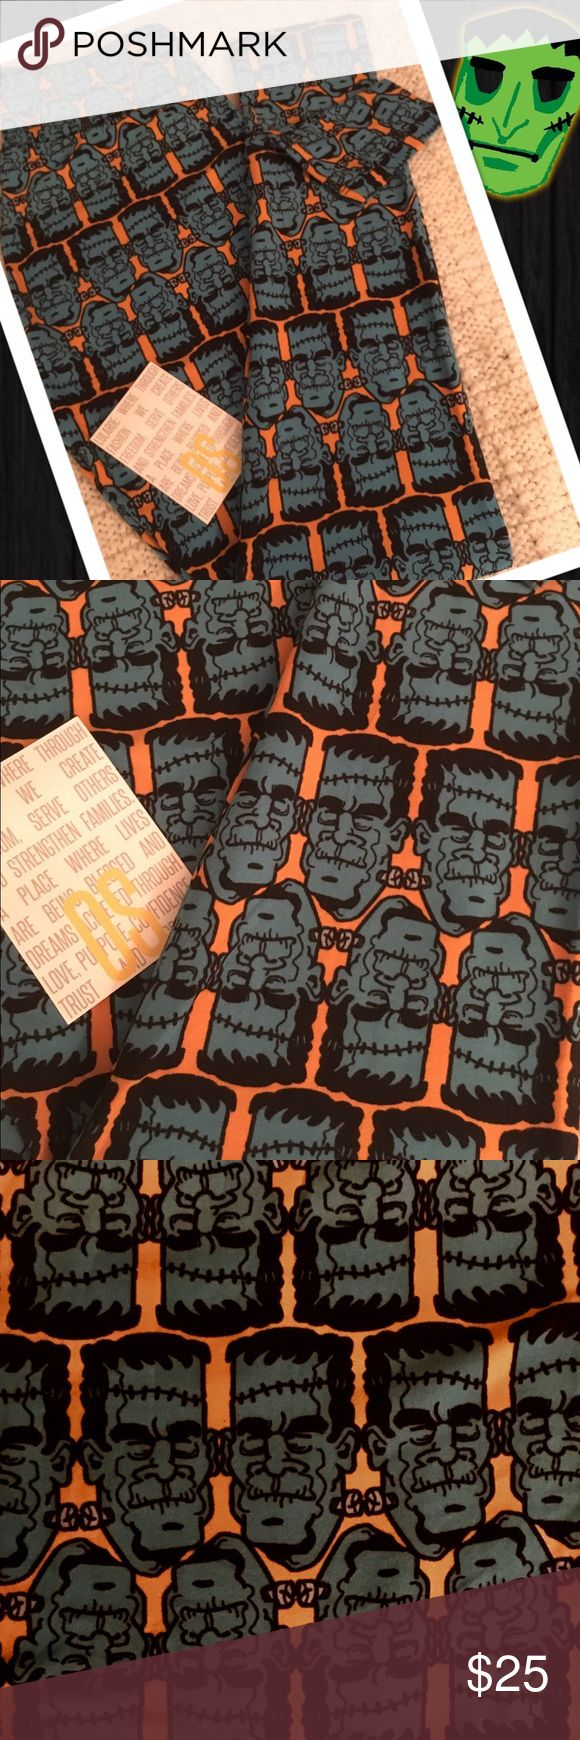 👹Frankenstein! LulaRoe One Size Leggings!👹 👹LulaRoe One Size Leggings ~ Frankenstein's Monster! ~ This pair has an orange base full of teal Frankenstein Monsters made just for you ~ Won't you be his butter-bottomed bride?👹 *Cross posted to another site                                                                          All leggings are bought new from consultants and arrive with and without tags. Each pair is inspected and never, ever worn!:-) LuLaRoe Pants Leggings